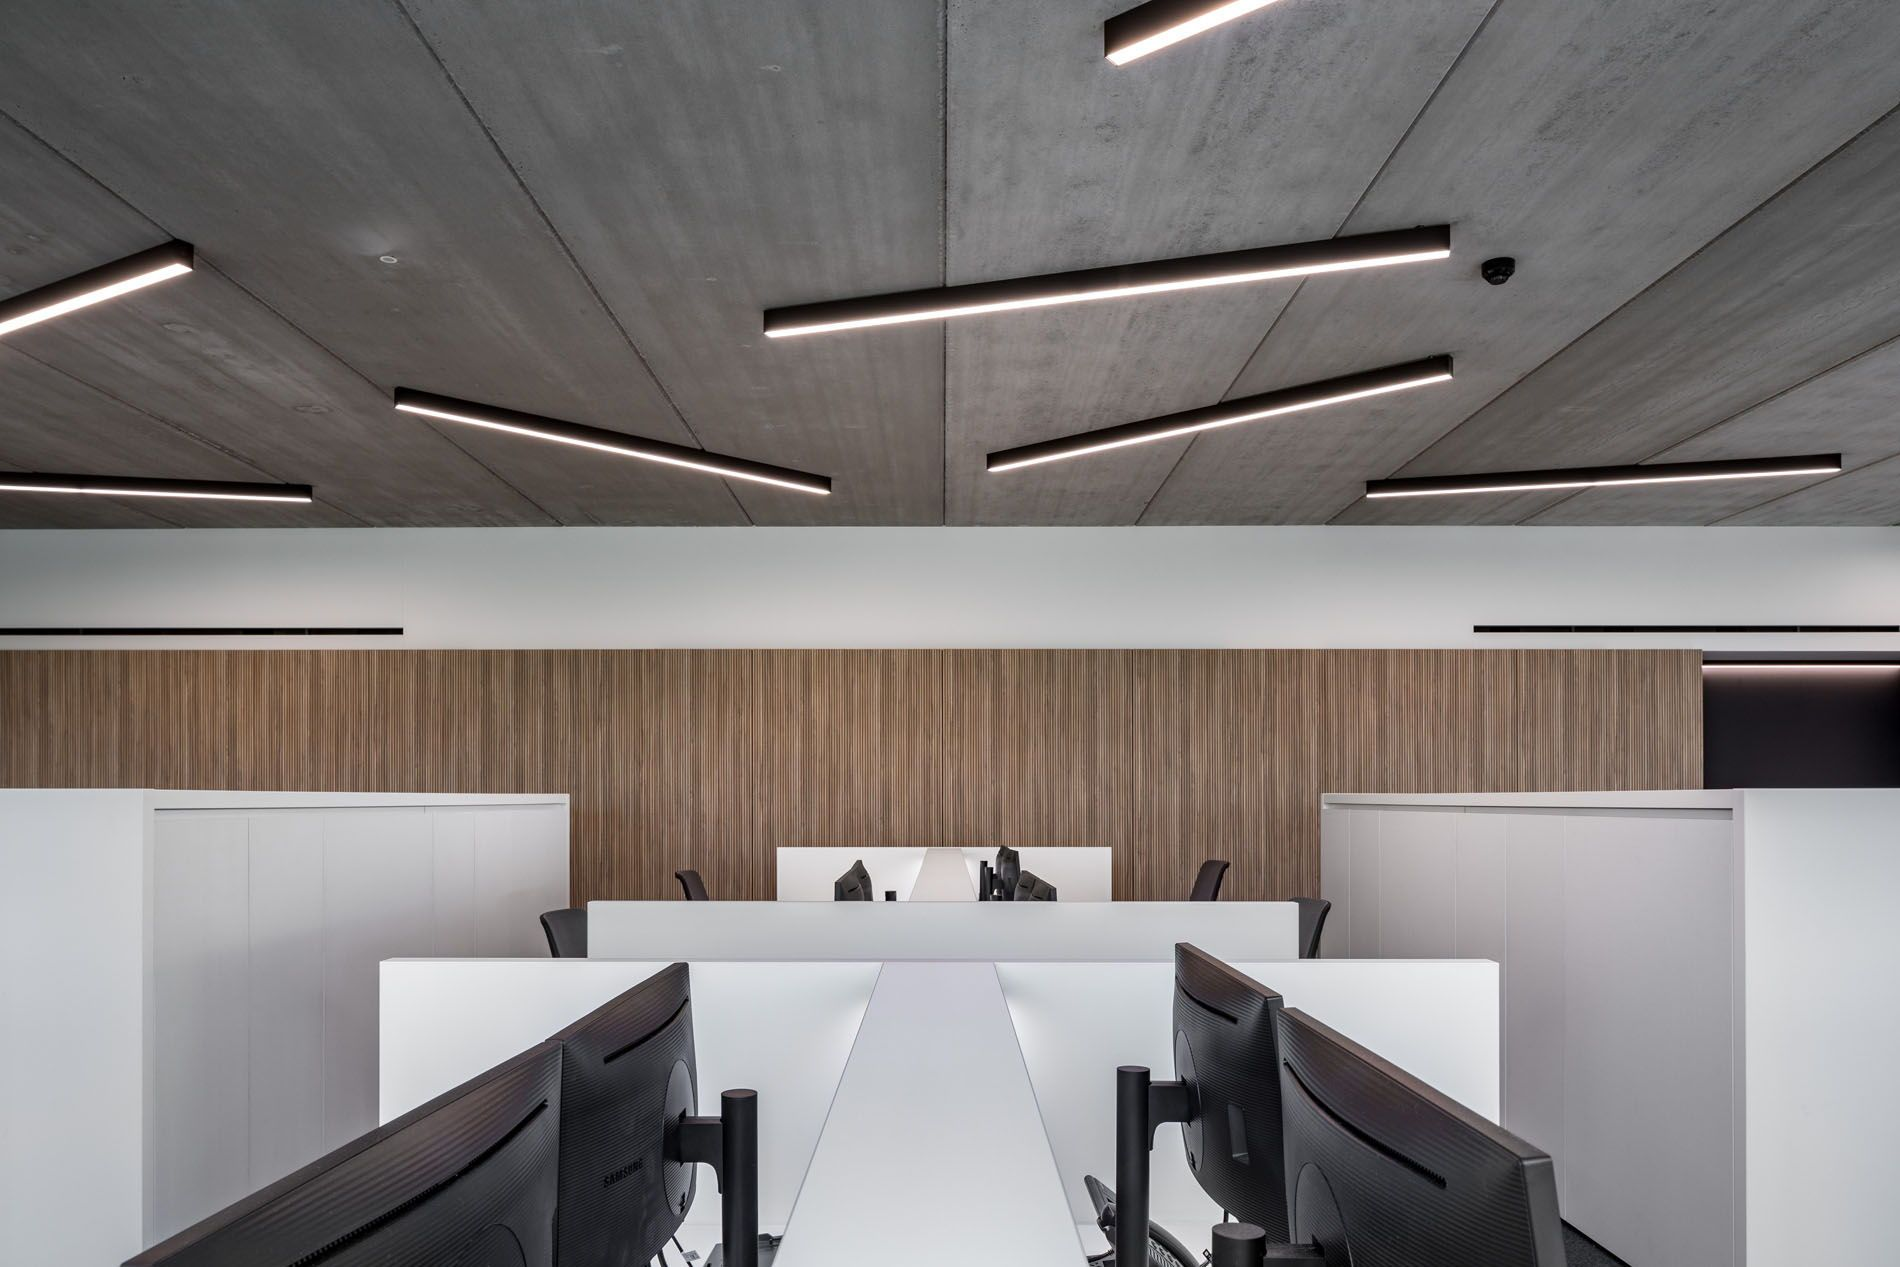 Zoutman Roeselare Need Some Inspiration For Ceiling Lights Looking For Some New Idea Office Lighting Design Track Lighting Bedroom Flexible Track Lighting